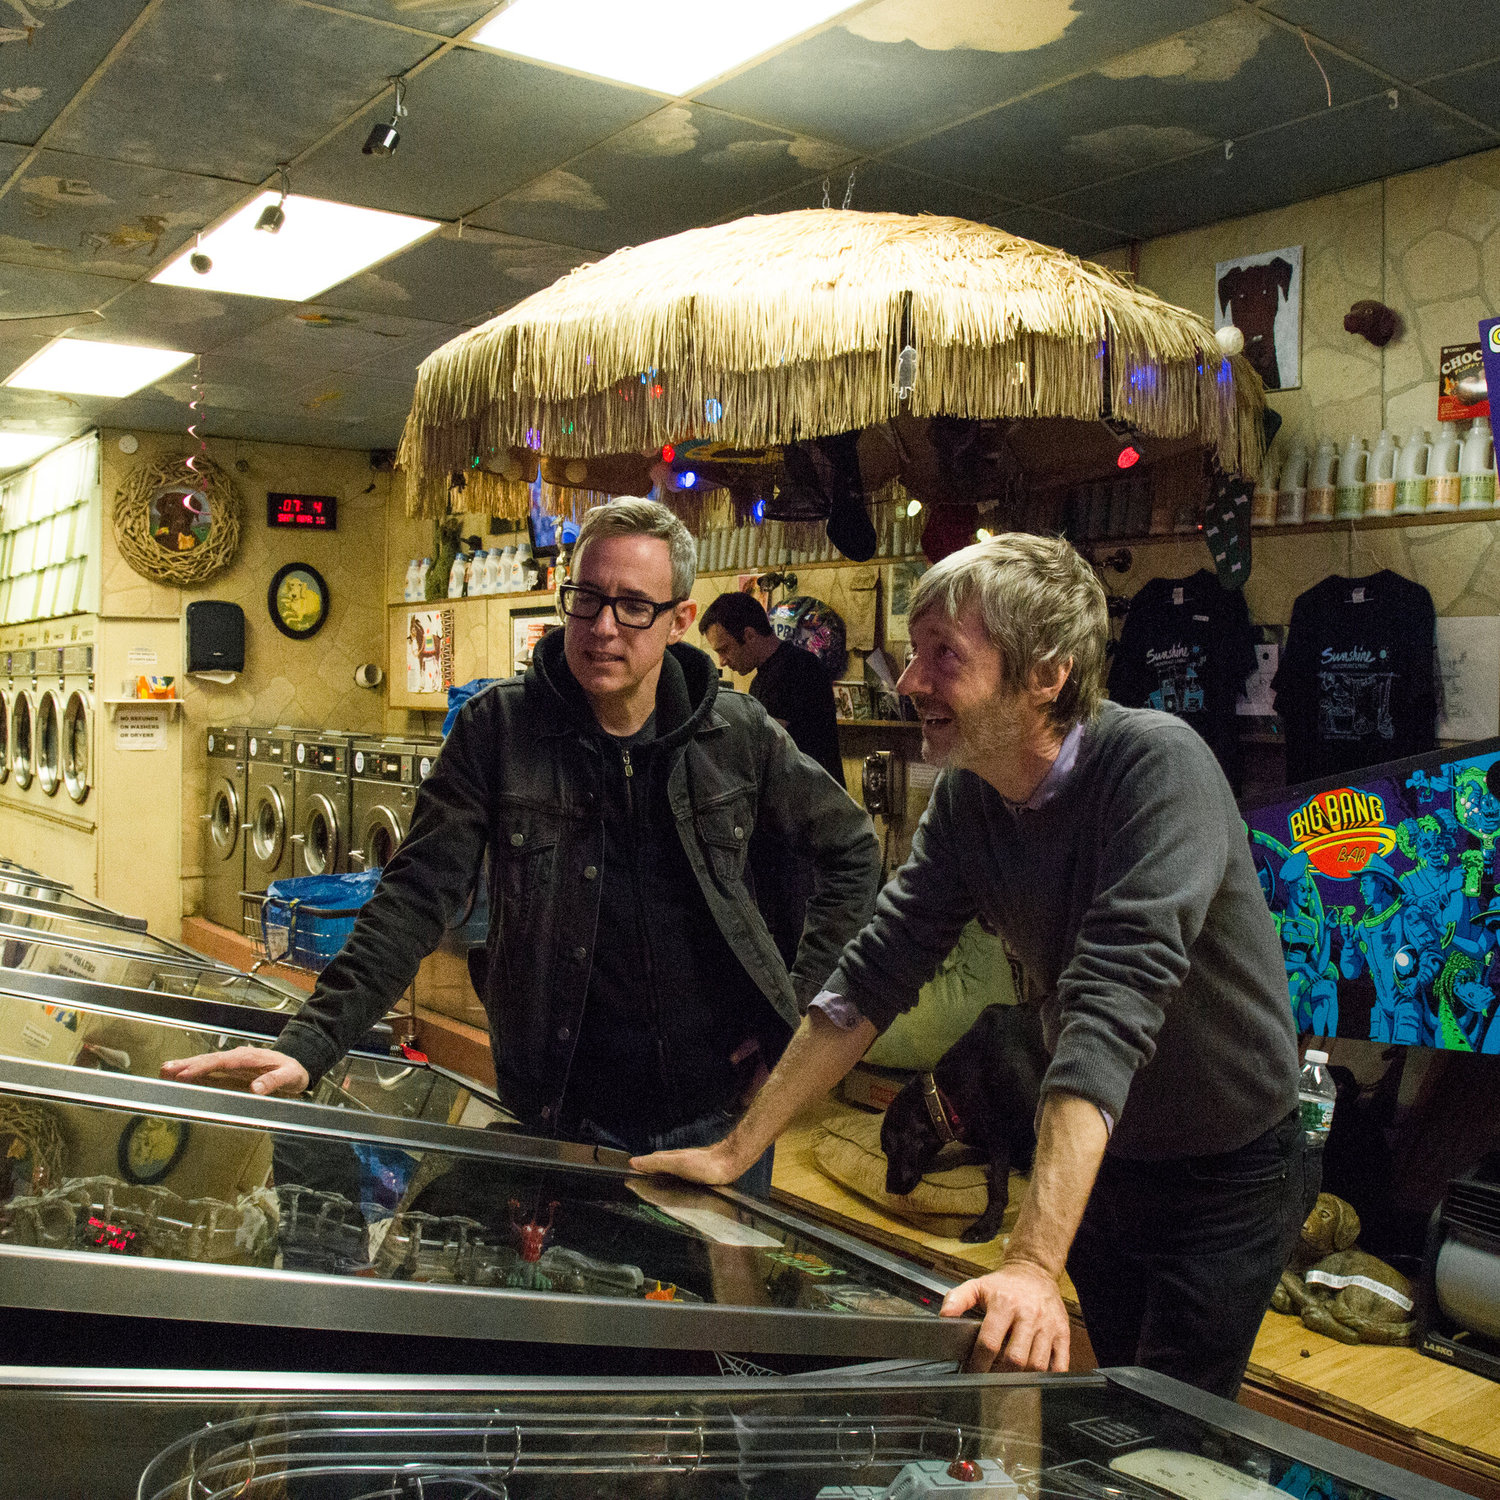 Patrick Ryan and Fred Blair came to the Sunshine Laundromat to play pinball. Located in the Greenpoint section of Brooklyn, the laundromat was recently remodeled to include a 1,000-square-foot arcade with 23 pinball machines, a photo booth and a fortune-telling machine, along with a bar that serves wine and beer.